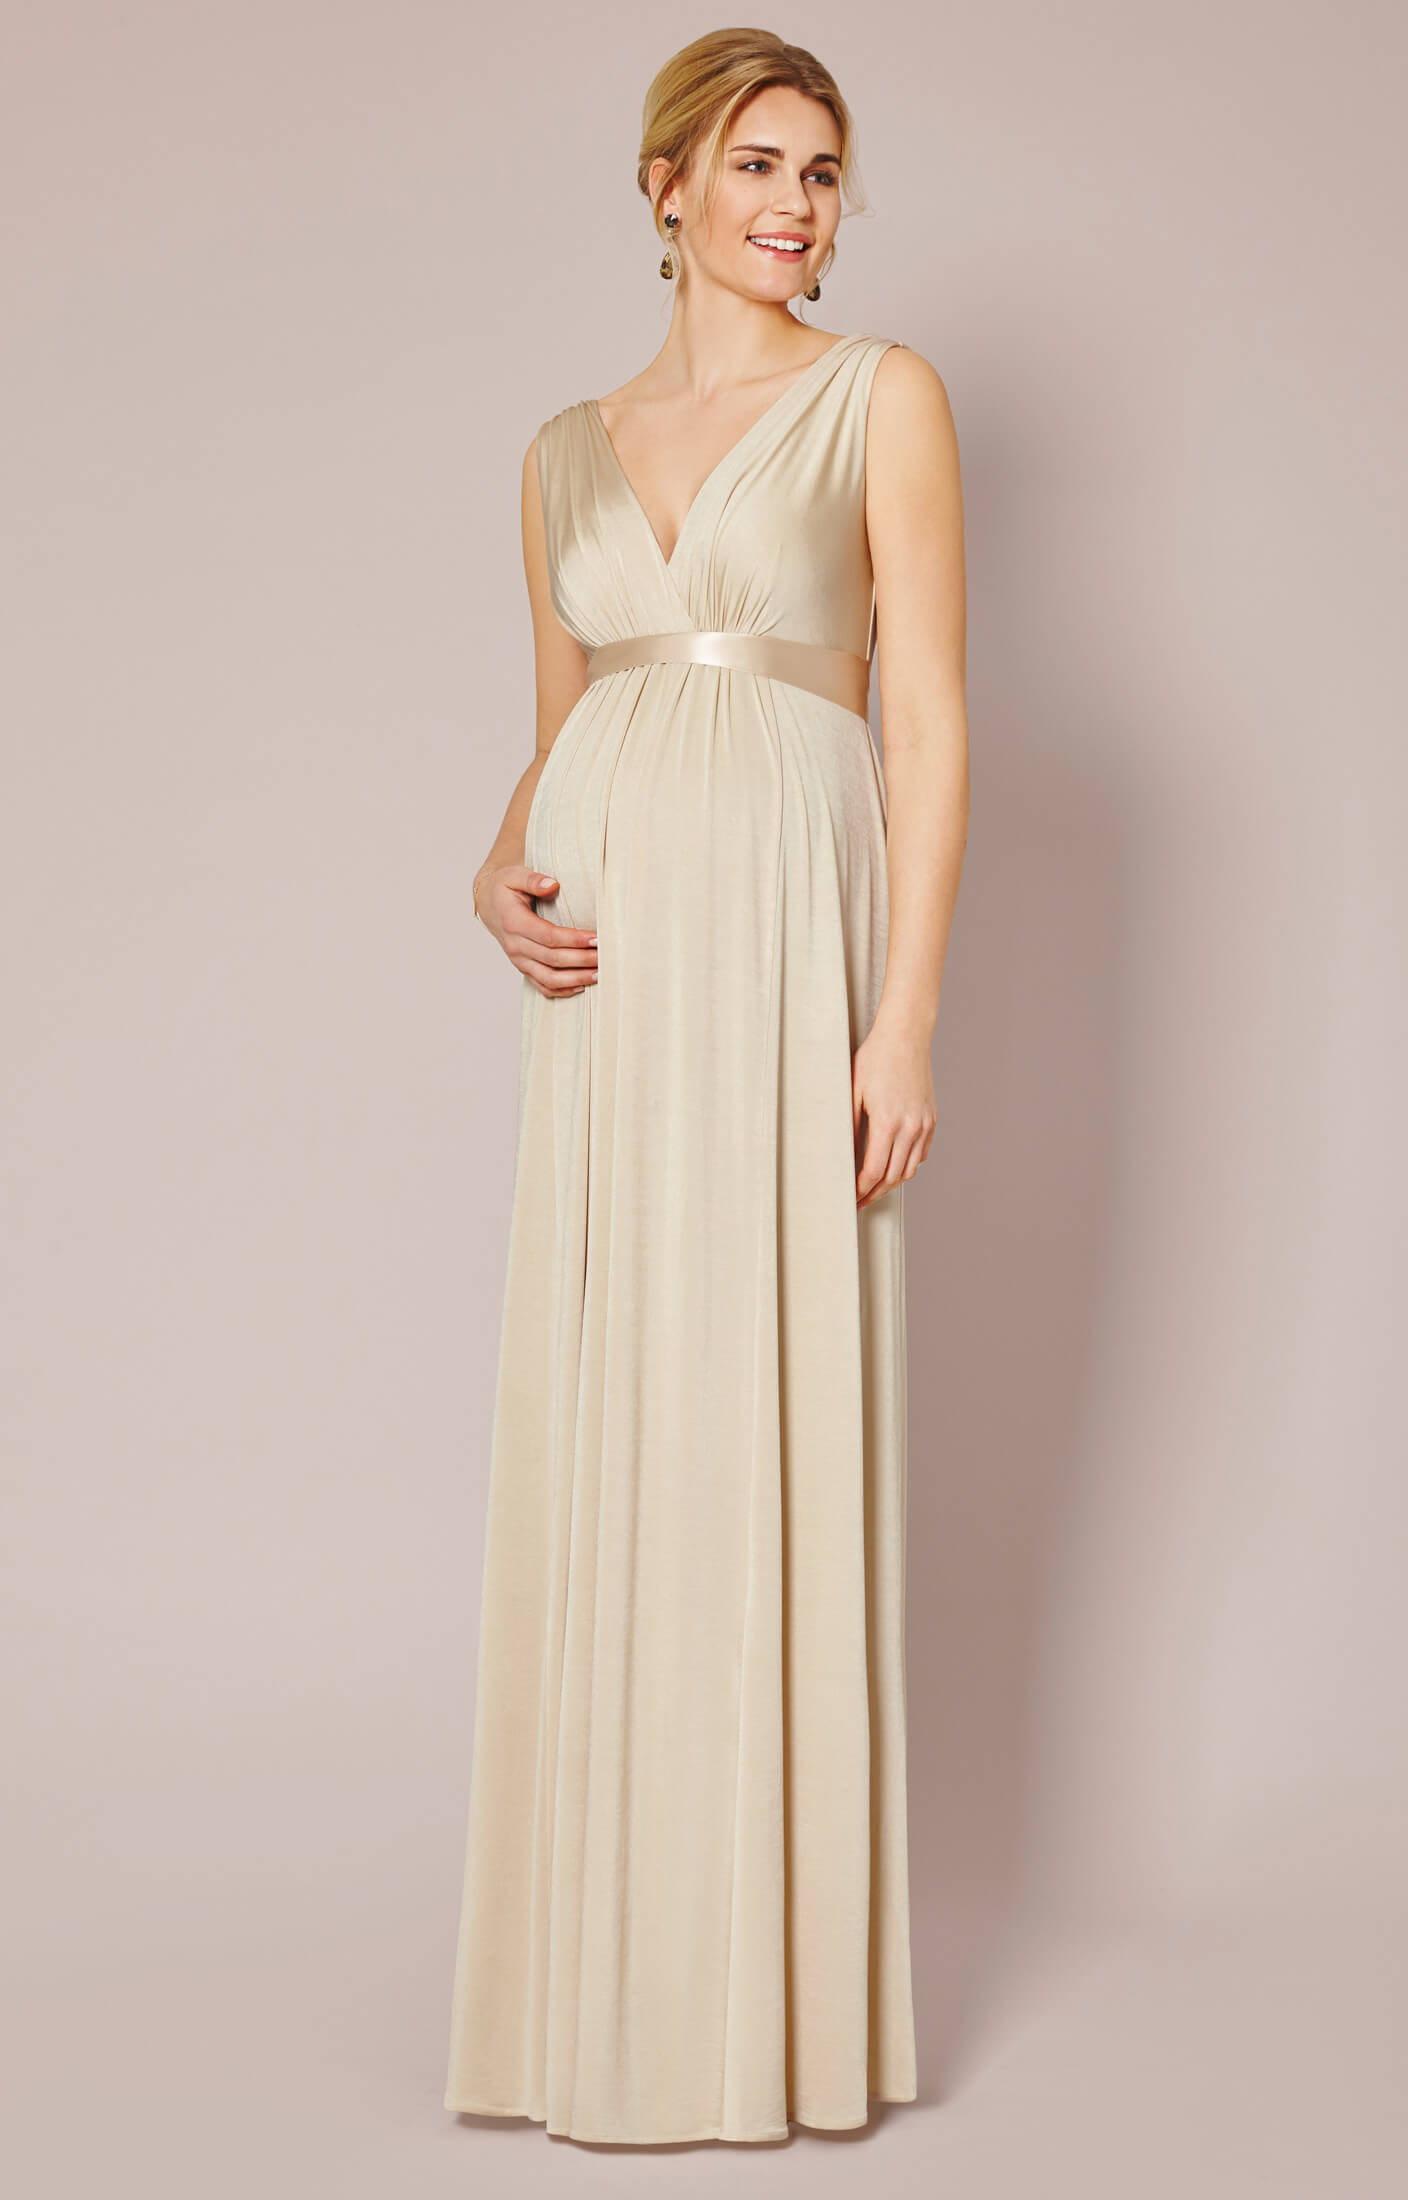 Anastasia Maternity Gown (Gold Dust)